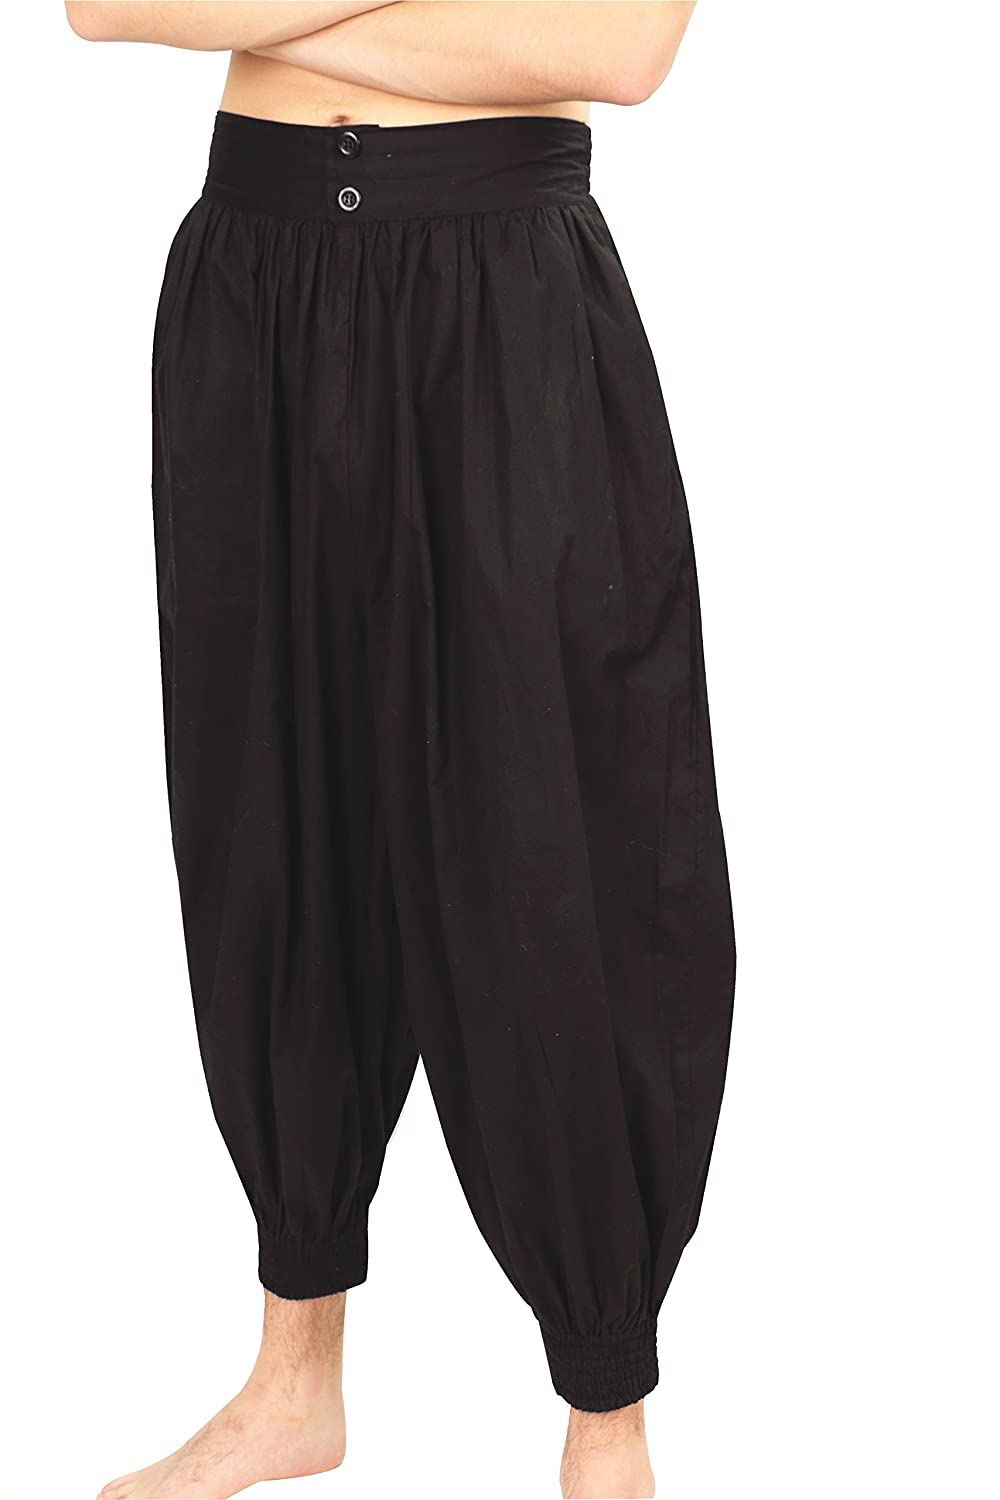 Deluxe Adult Costumes - Black Madagascar harem pirate pants by Museum Replicas